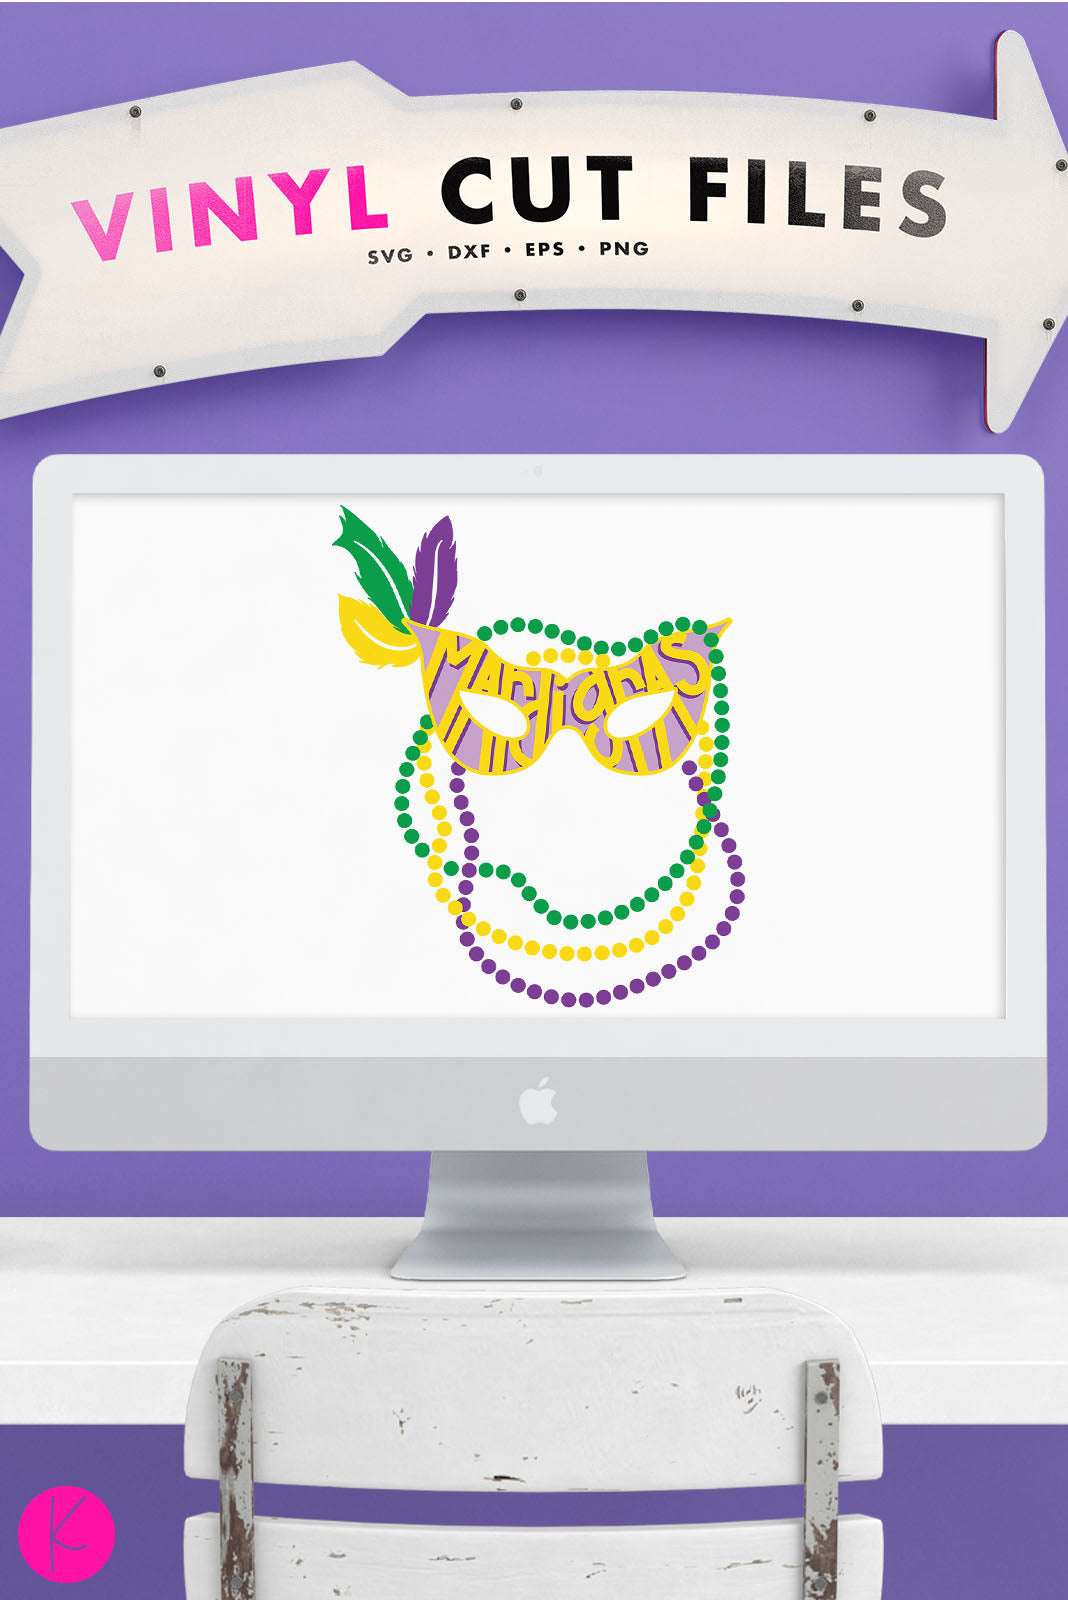 Mardi Gras Mask and Beads | SVG DXF EPS PNG Cut Files Hand Lettered Mardi Gras Mask with Feathers and Draped Beads for Shirts and Home Decor | SVG DXF PNG Cut Files 2 files for each format layered version with reusable